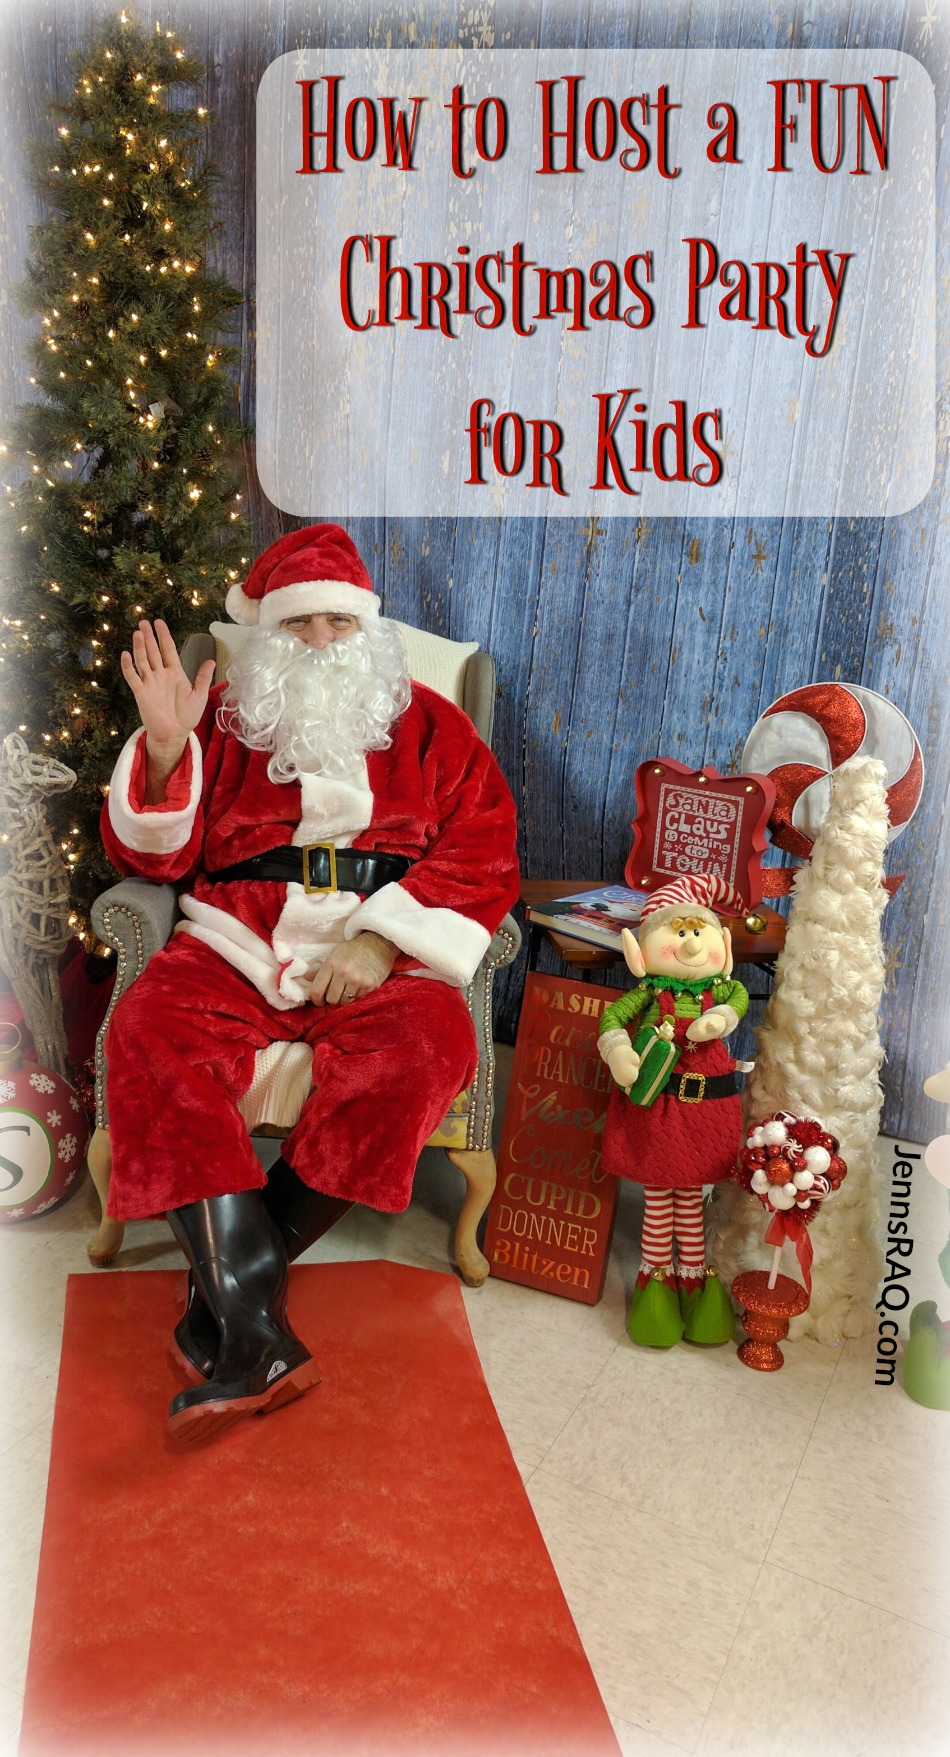 How to Host a FUN Christmas Party for Kids as seen on JennsRAQ.com